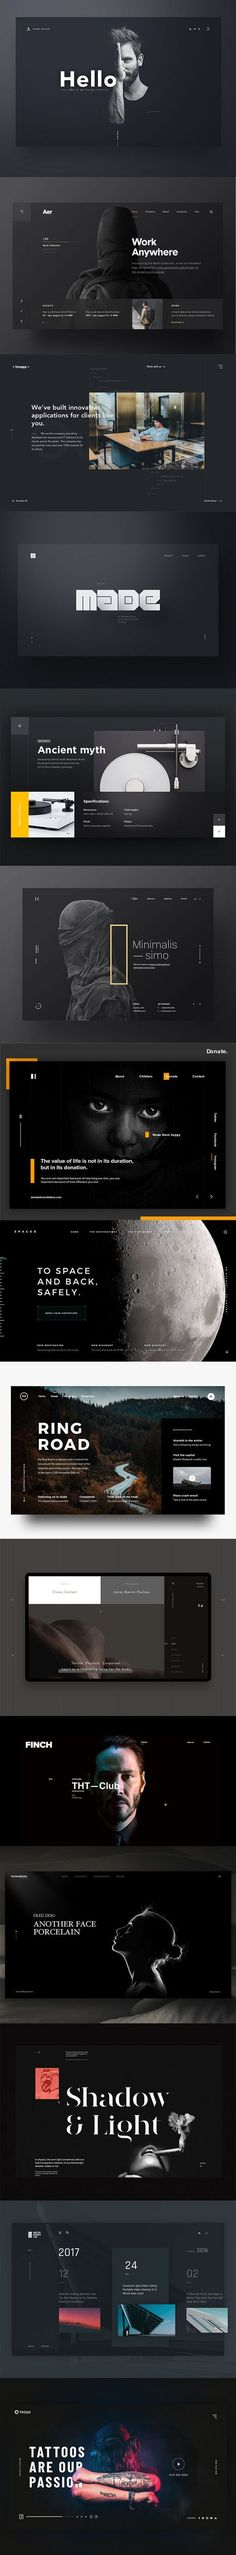 So if you are looking for inspiration for design solutions which using dark background as a basis of color scheme, here are 50 Excellent Dark Background Web UI Designs to inspire you. Web Design Trends, Flat Design, Icon Design, Web Design Tutorial, Graphisches Design, Homepage Design, Web Design Tips, Design Room, Design Studio